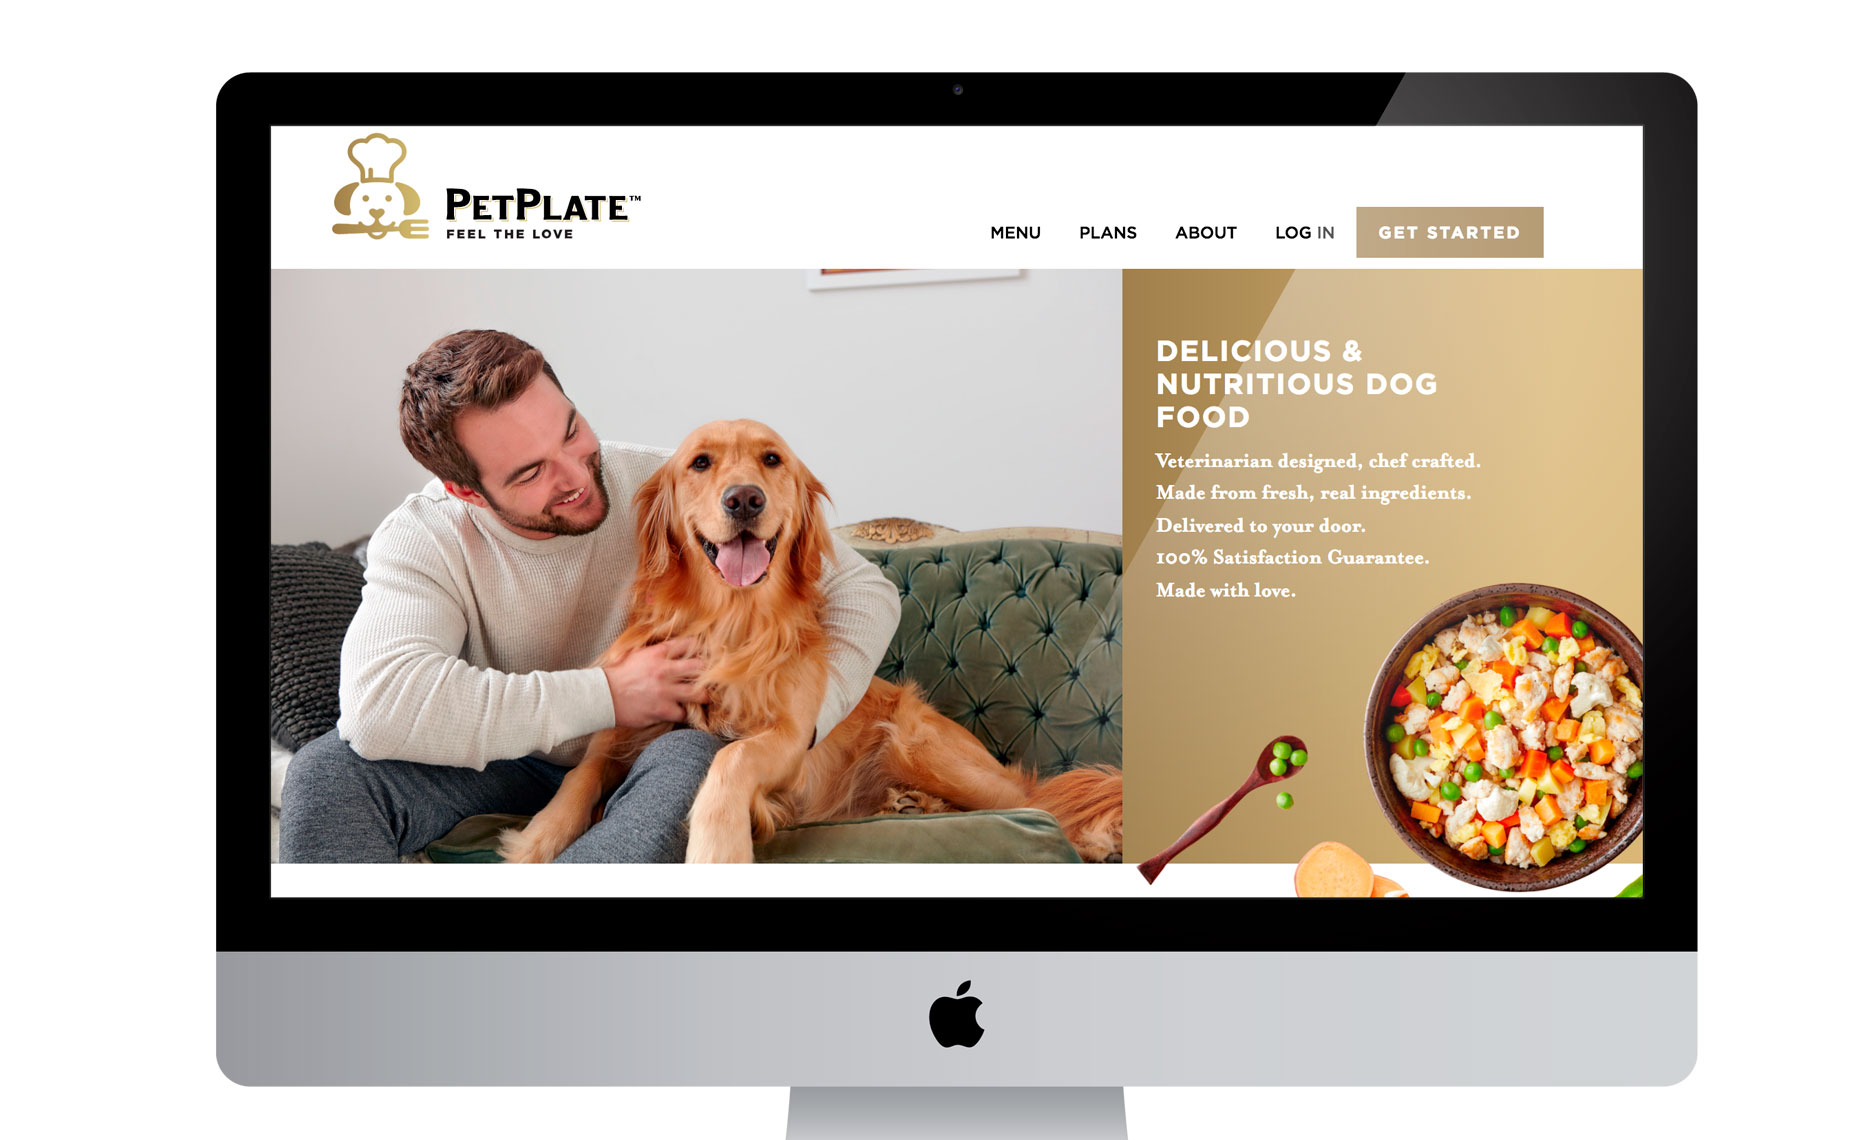 pet plate dog food and lifestyle shoot